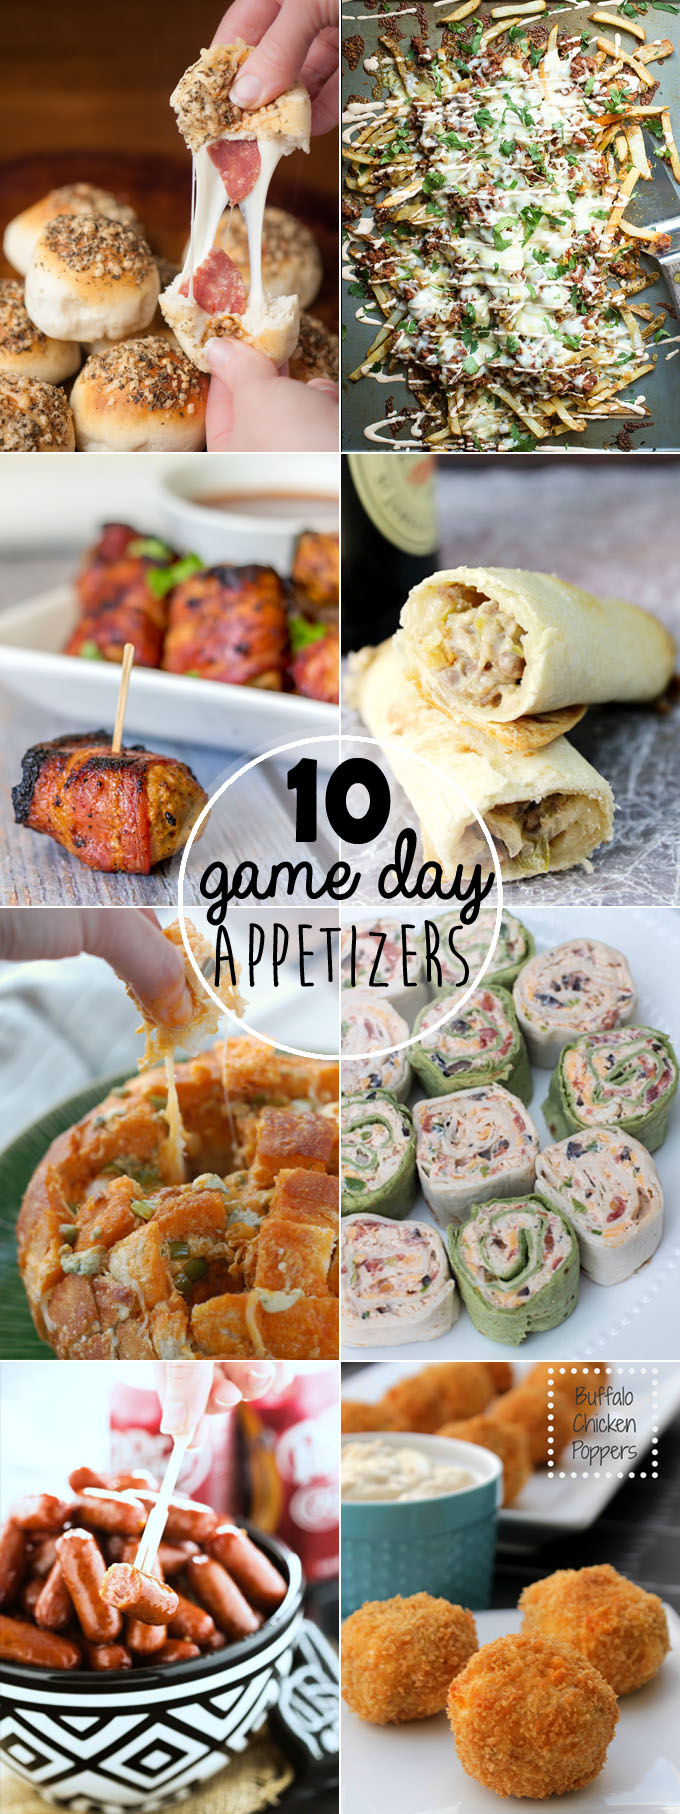 10-game-day-appetizers-pinterest